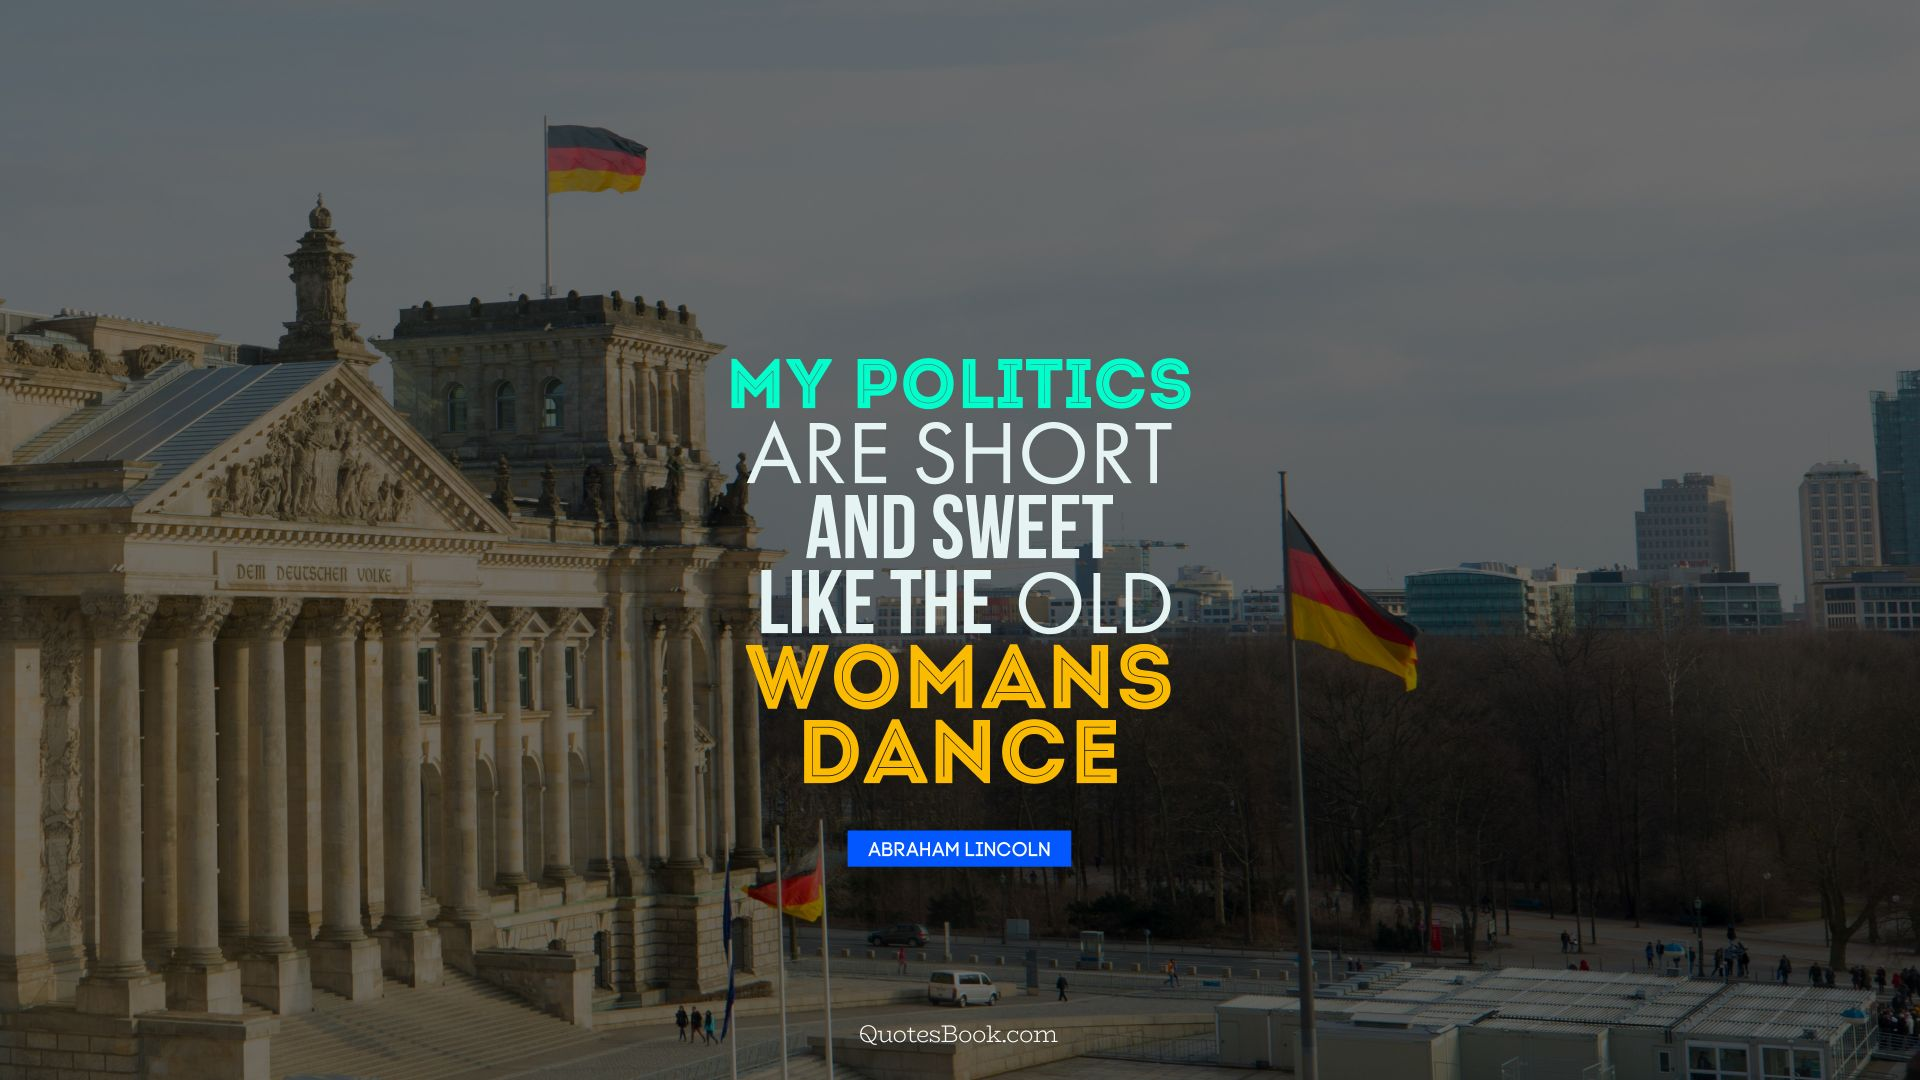 My politics are short and sweet like the old womans dance. - Quote by Abraham Lincoln